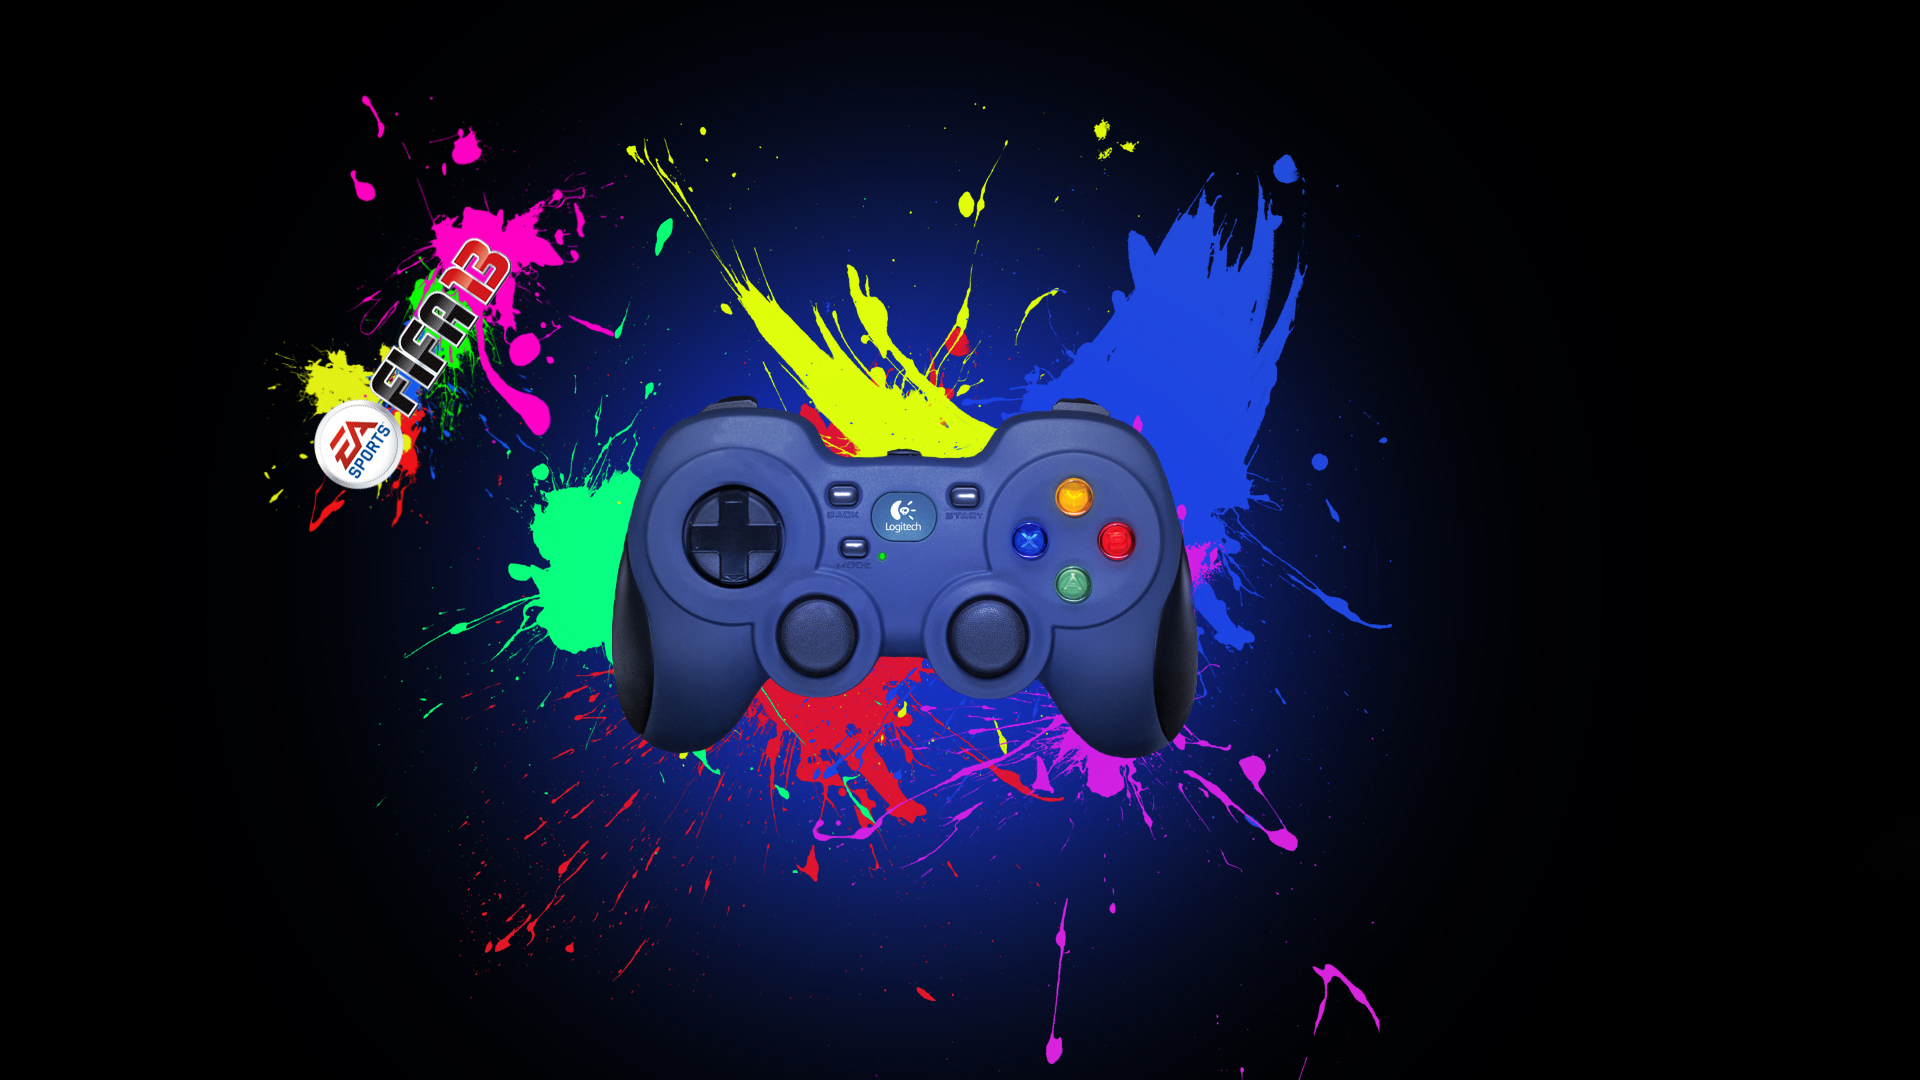 Black background joystick Logitech wallpapers and images 1920x1080